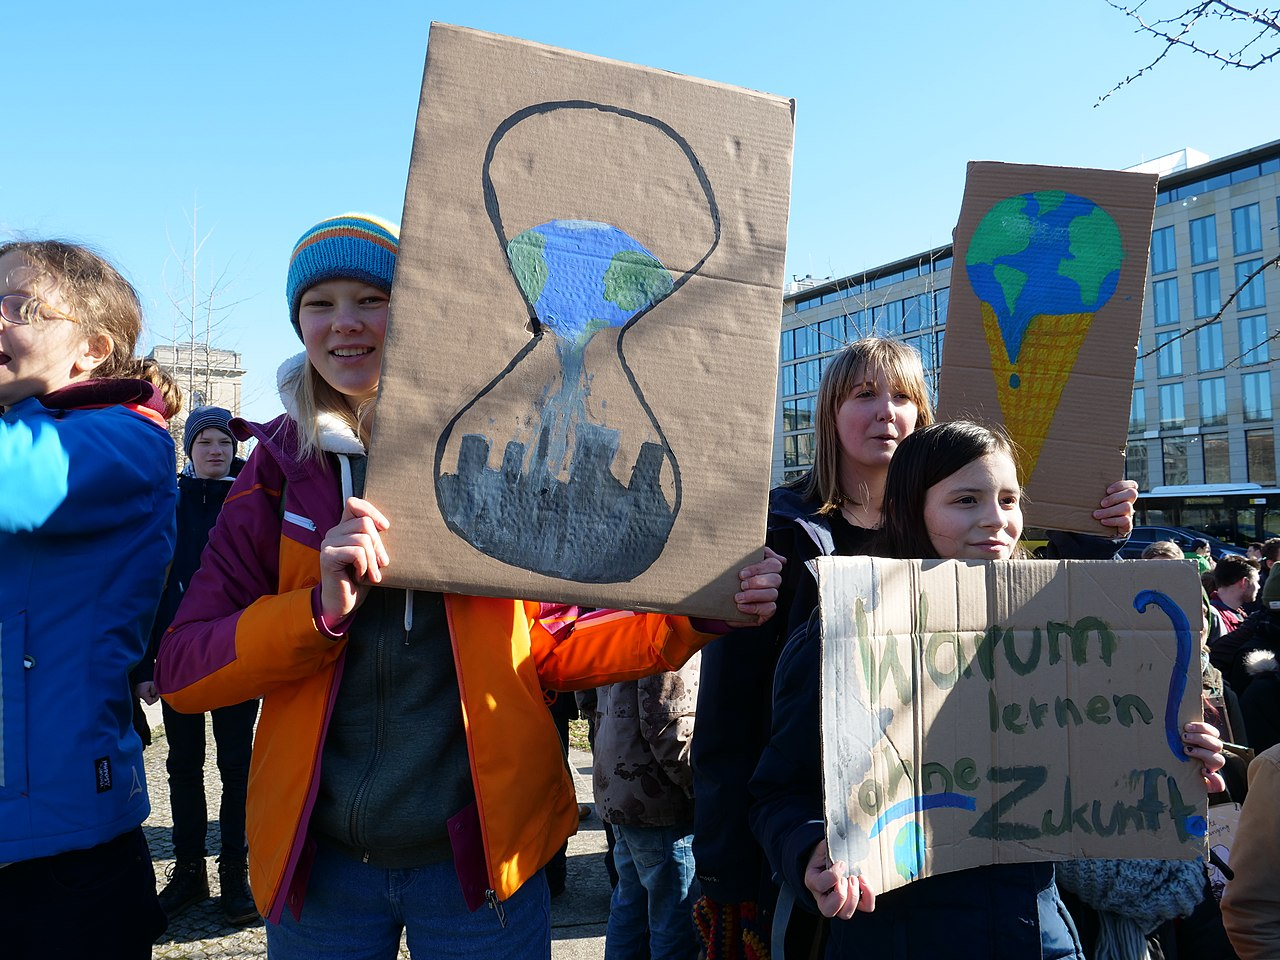 FridaysForFuture protest Berlin 22-02-2019 06.jpg